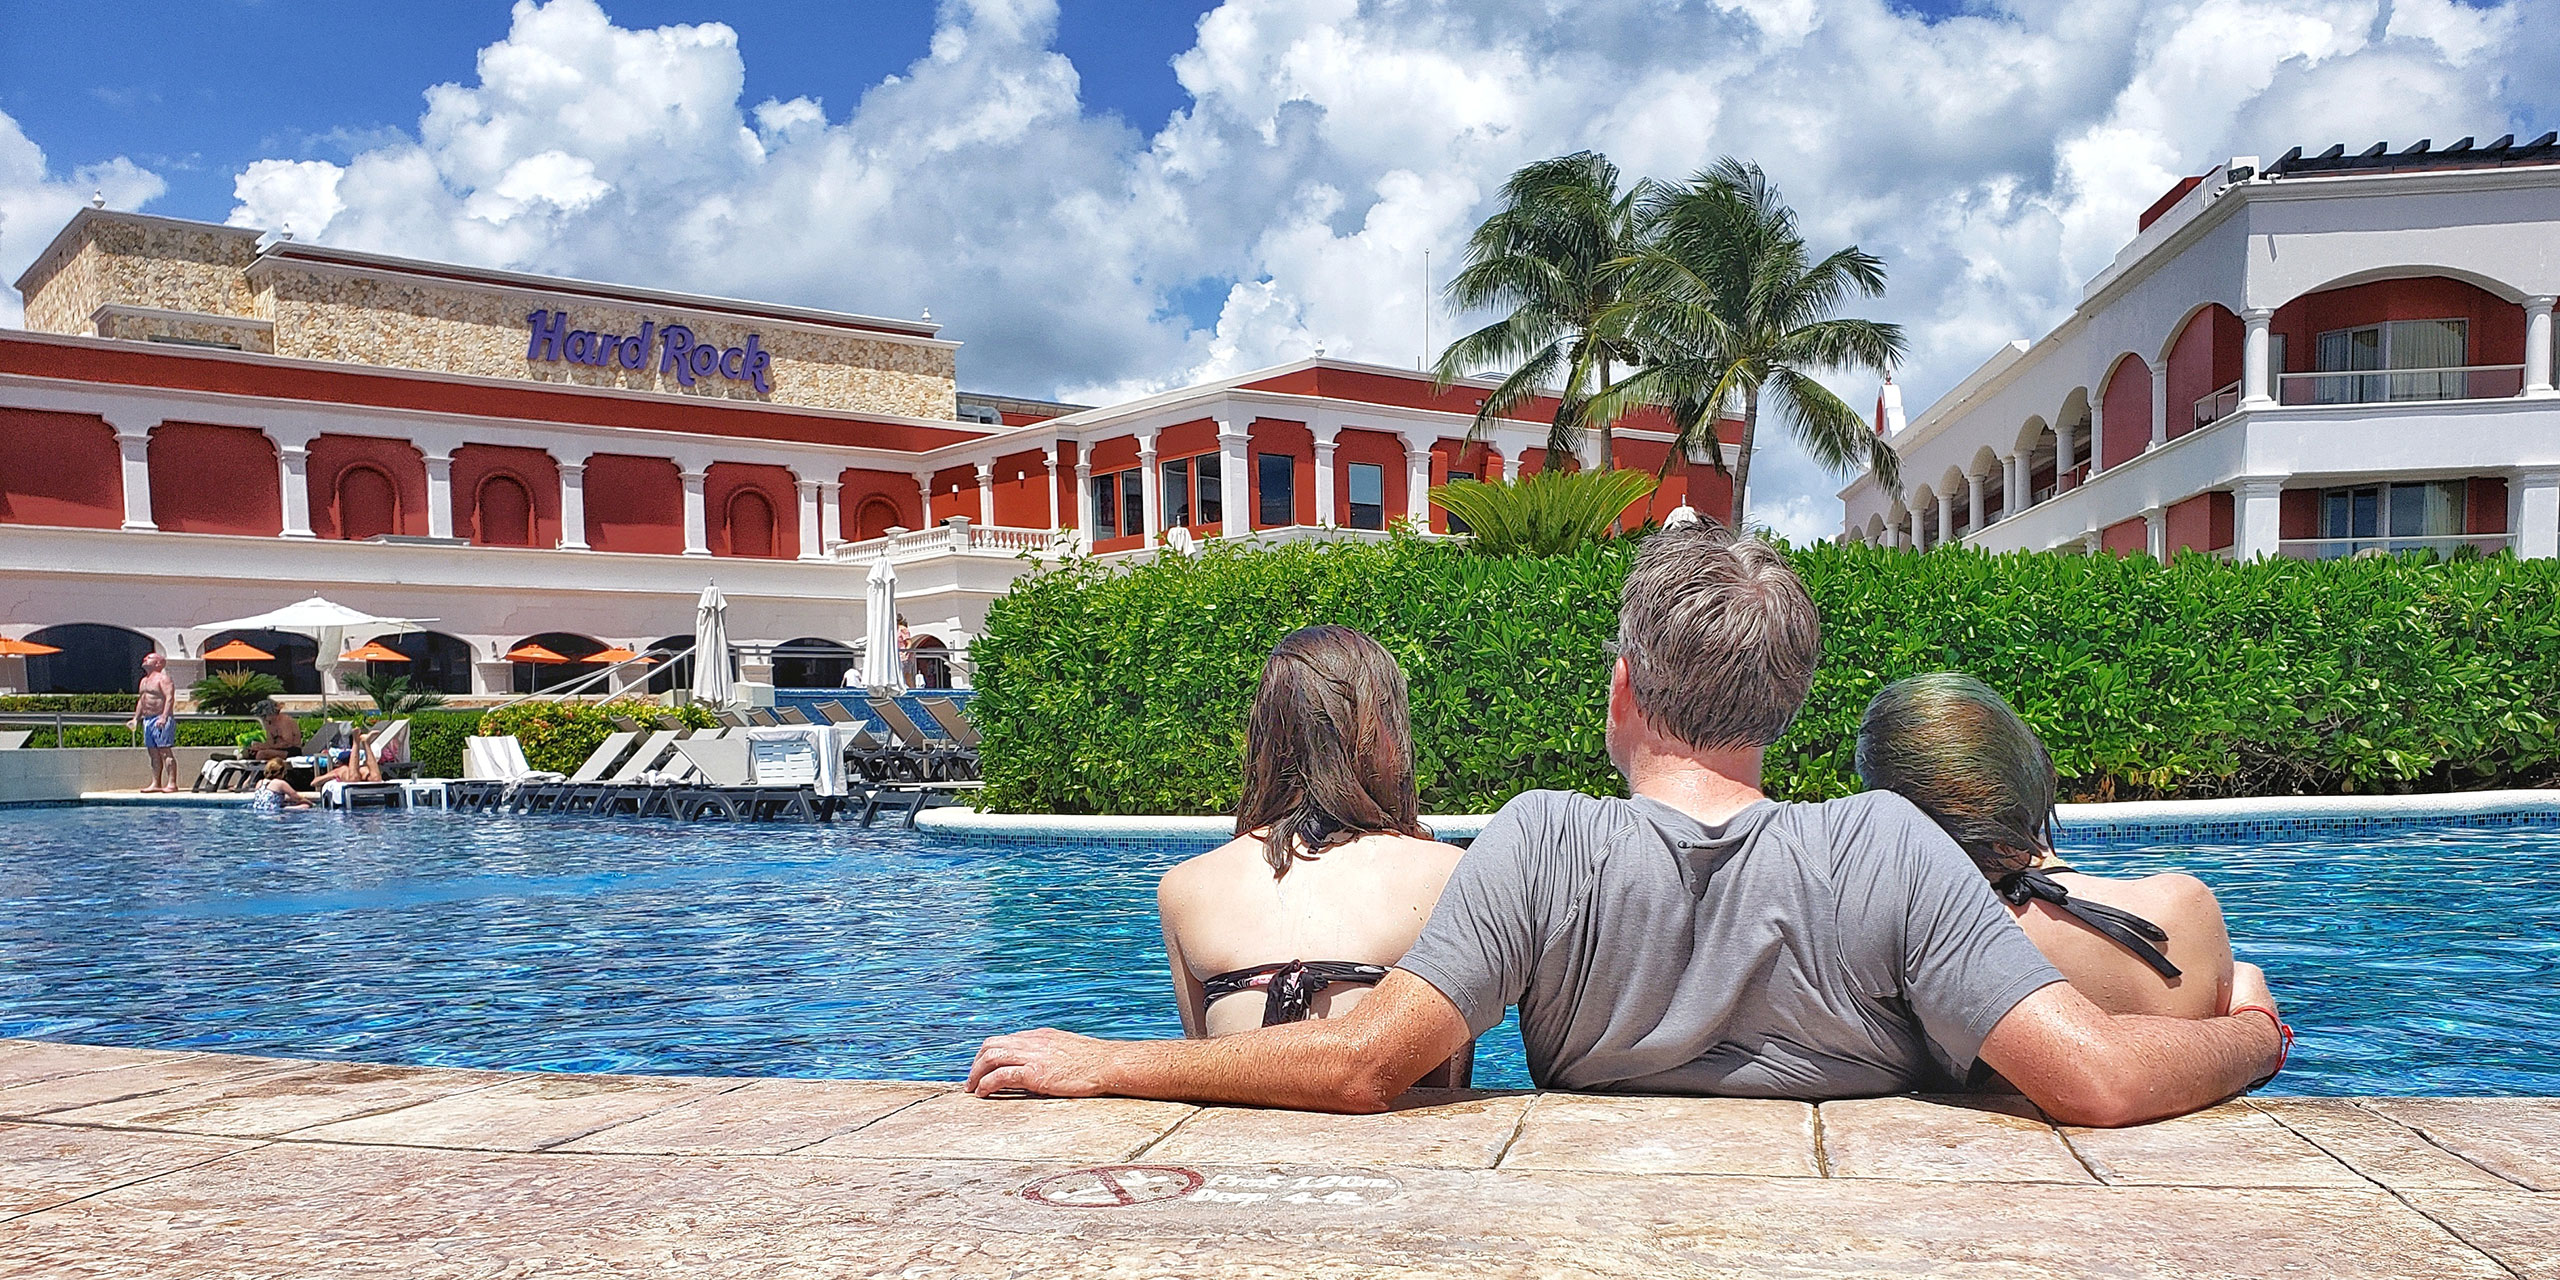 Cheap AllInclusive Resorts The Best Family Vacations for